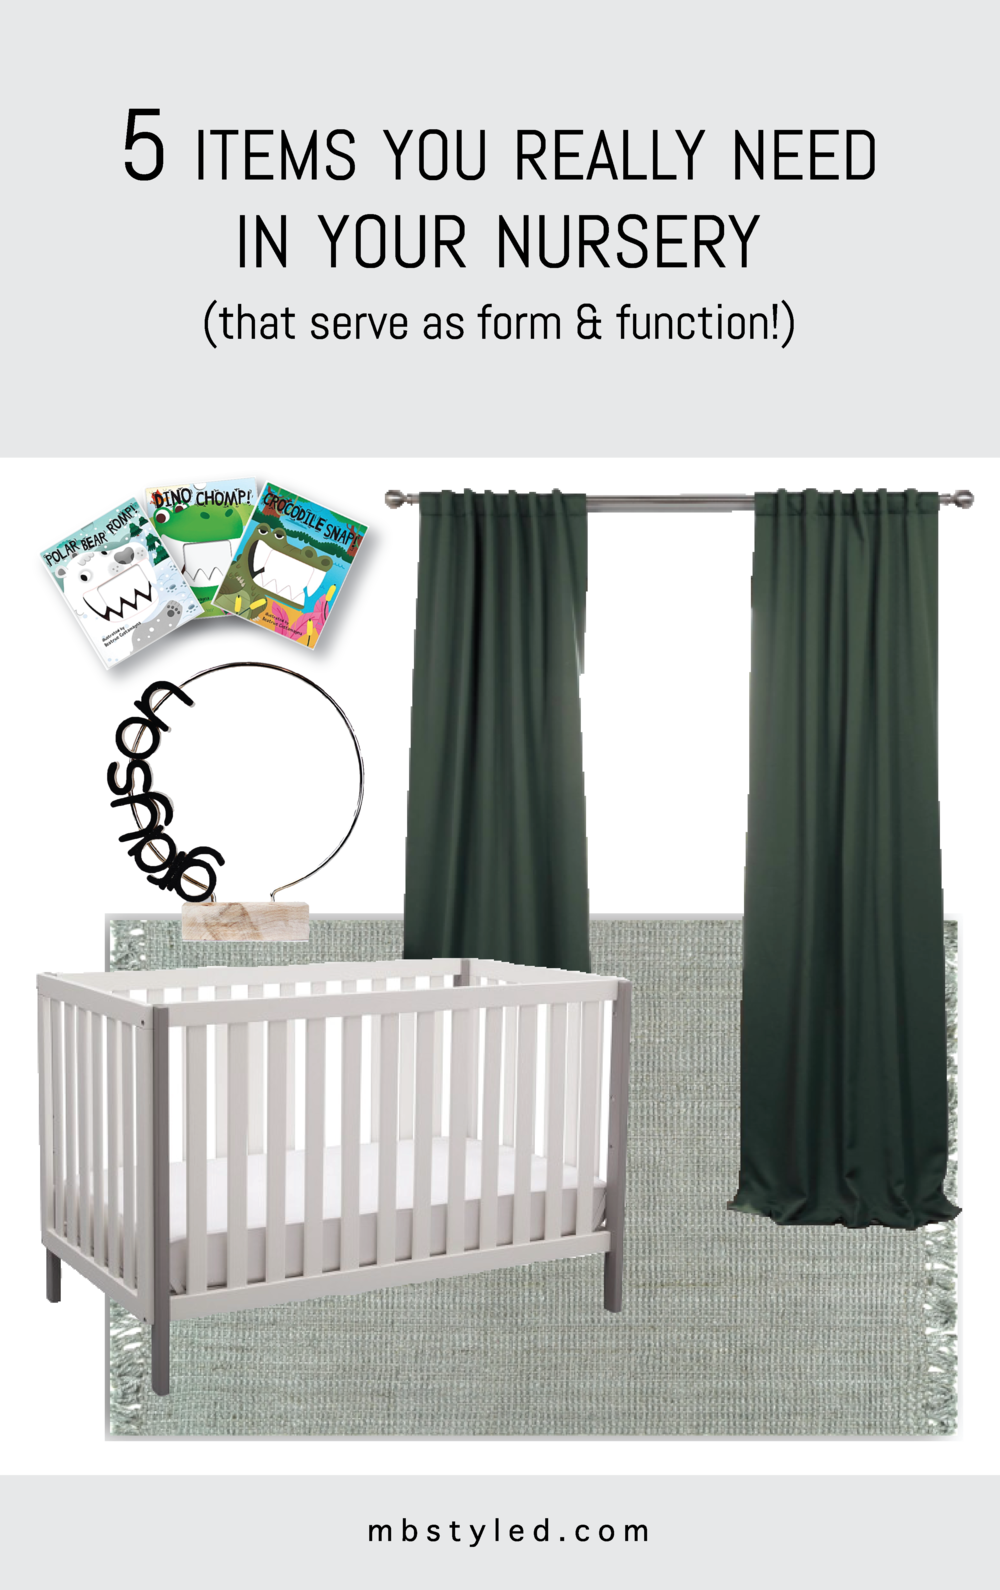 THE 5 FUNCTIONAL DECOR ITEMS YOU REALLY NEED IN YOUR NURSERY from mbstyled.com Planning out your nursery decor doesn't have to be stressful or expensive! Here are five pieces that will make a big impact in your room and bonus! They all serve as double duty being both beautiful and useful.